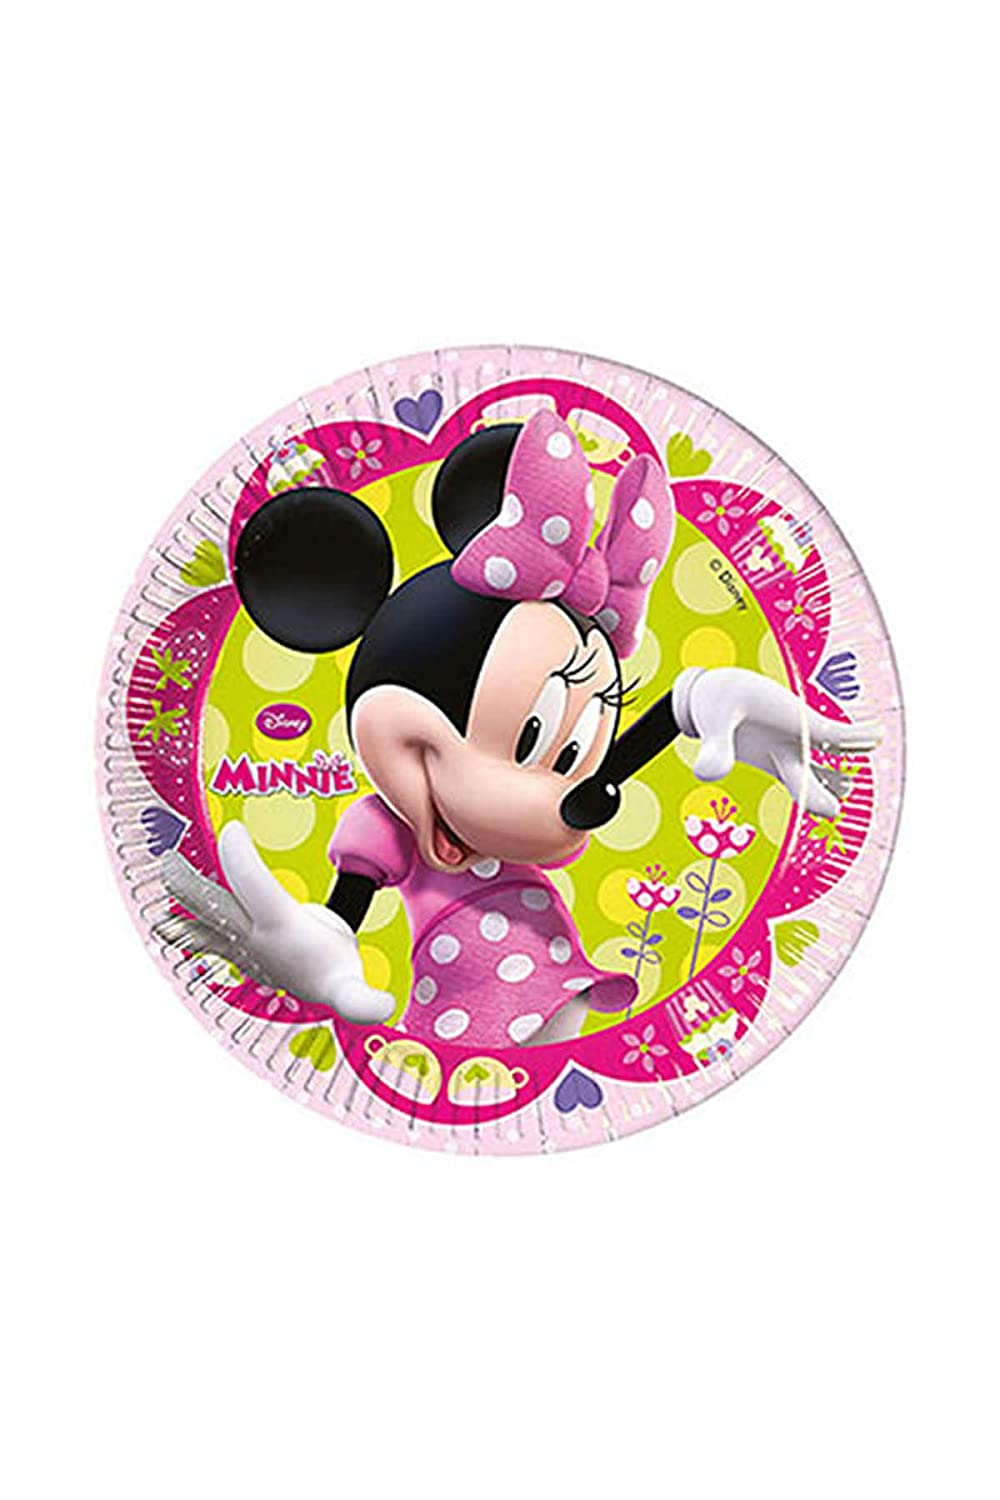 Amazon.com: Amscan – Minnie – Platos de papel para fiestas ...